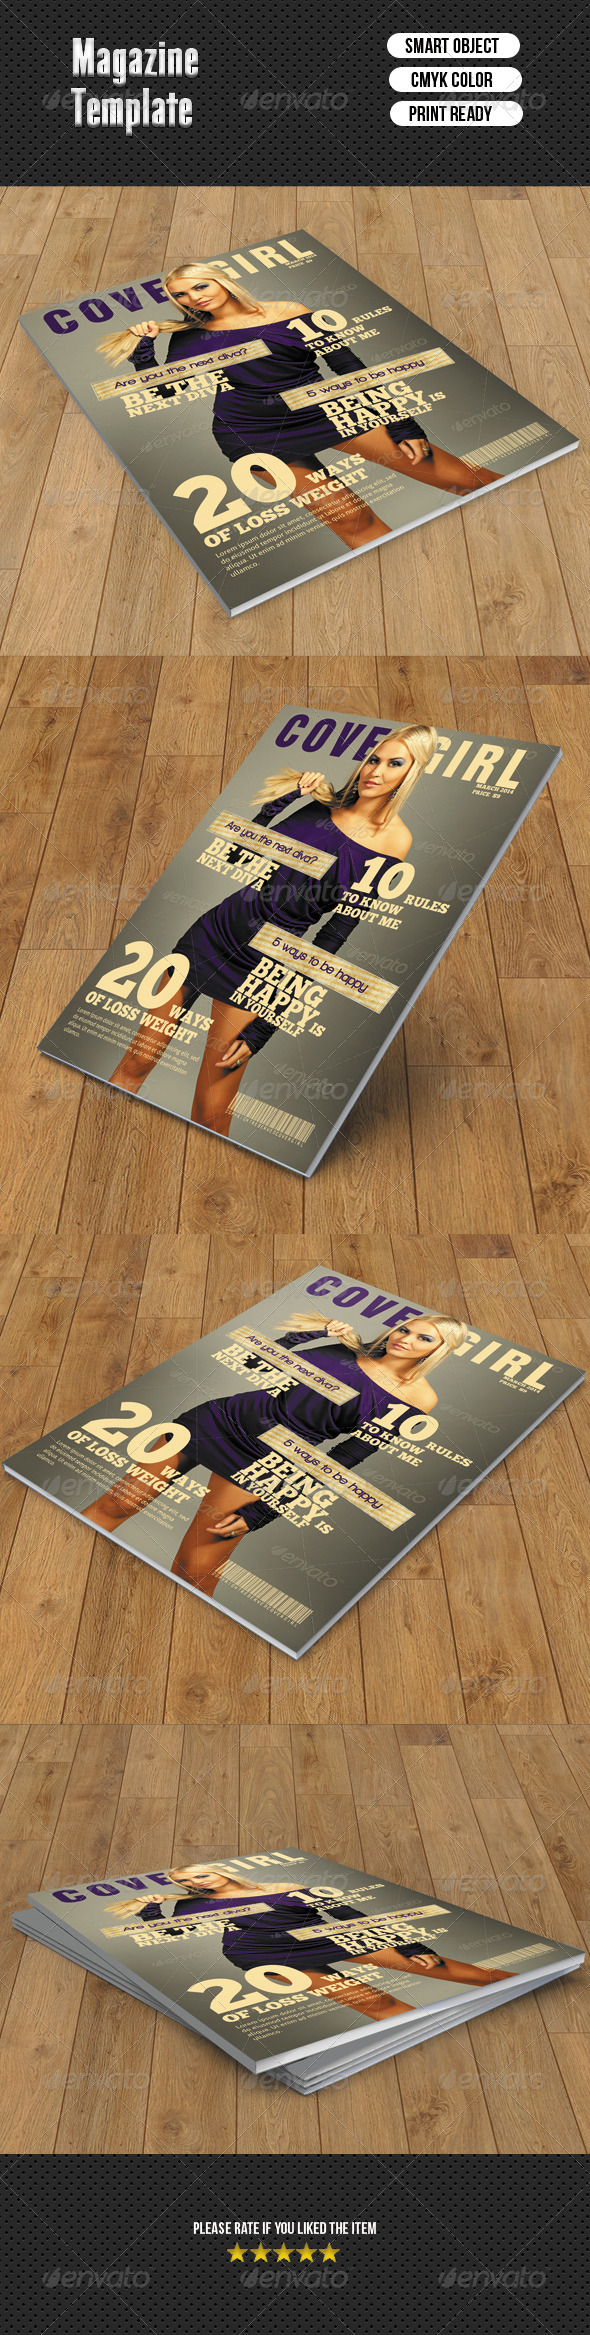 Fashion Magazine Cover - Magazines Print Templates